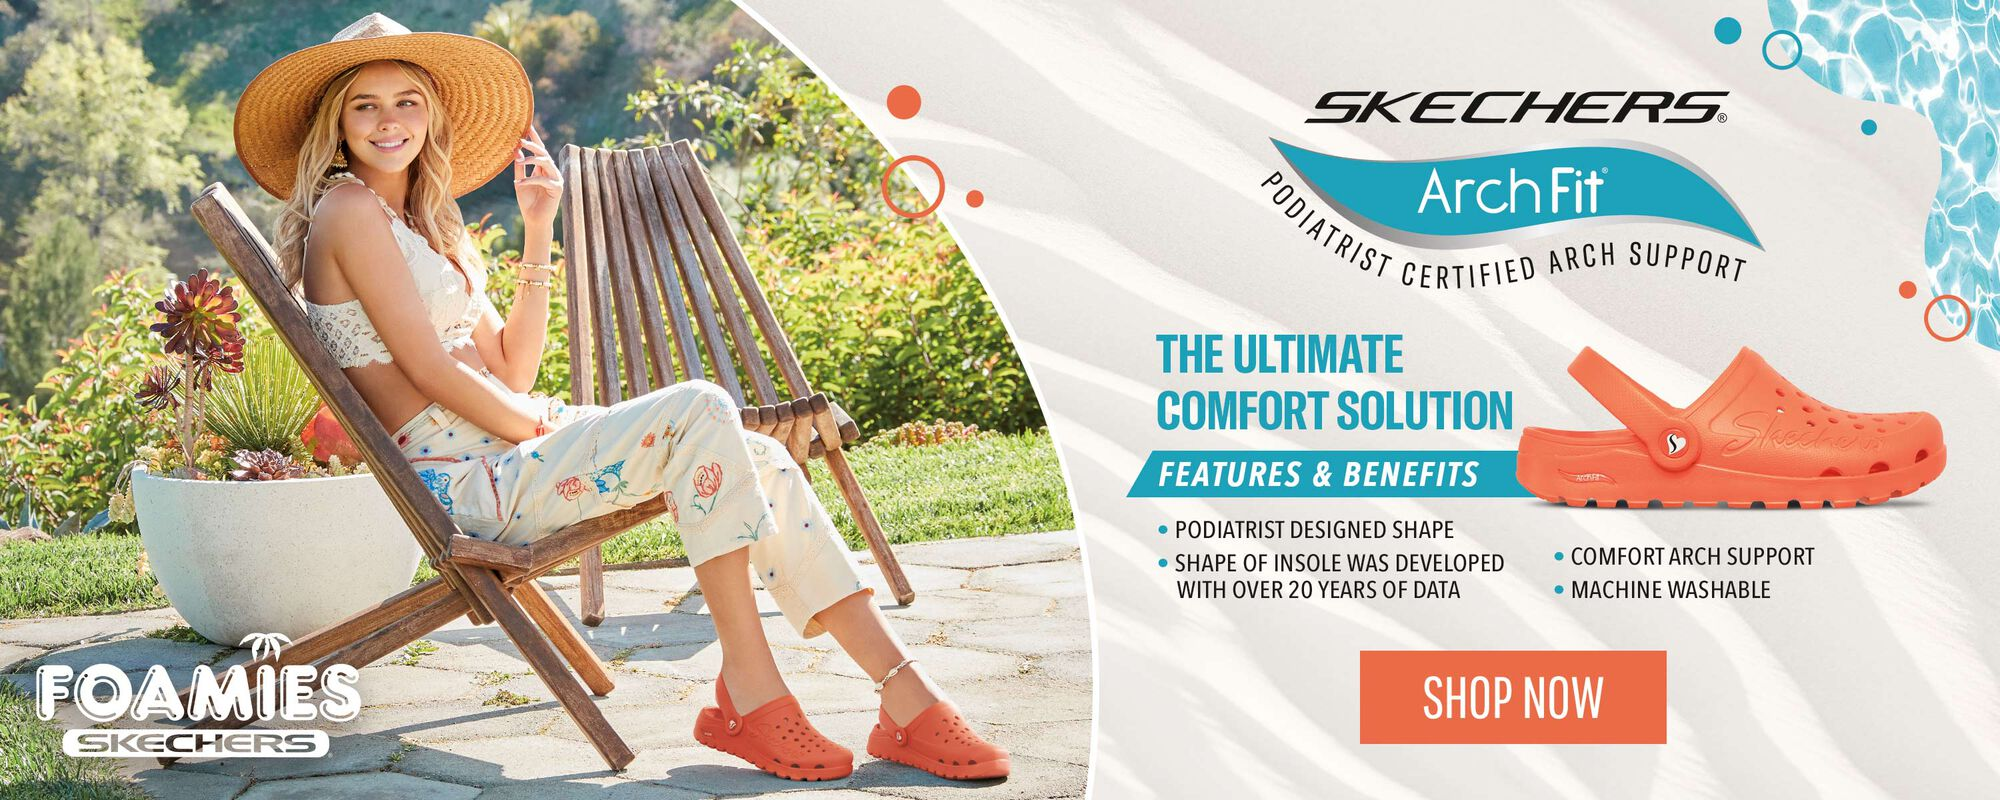 Skechers Arch Fit - The ultimate comfort solution - Features and benefits:Podiatrist designed shape - Shape of insole was developed with over 20 years of data  - Comfort arch support - Machine washable - Shop Now